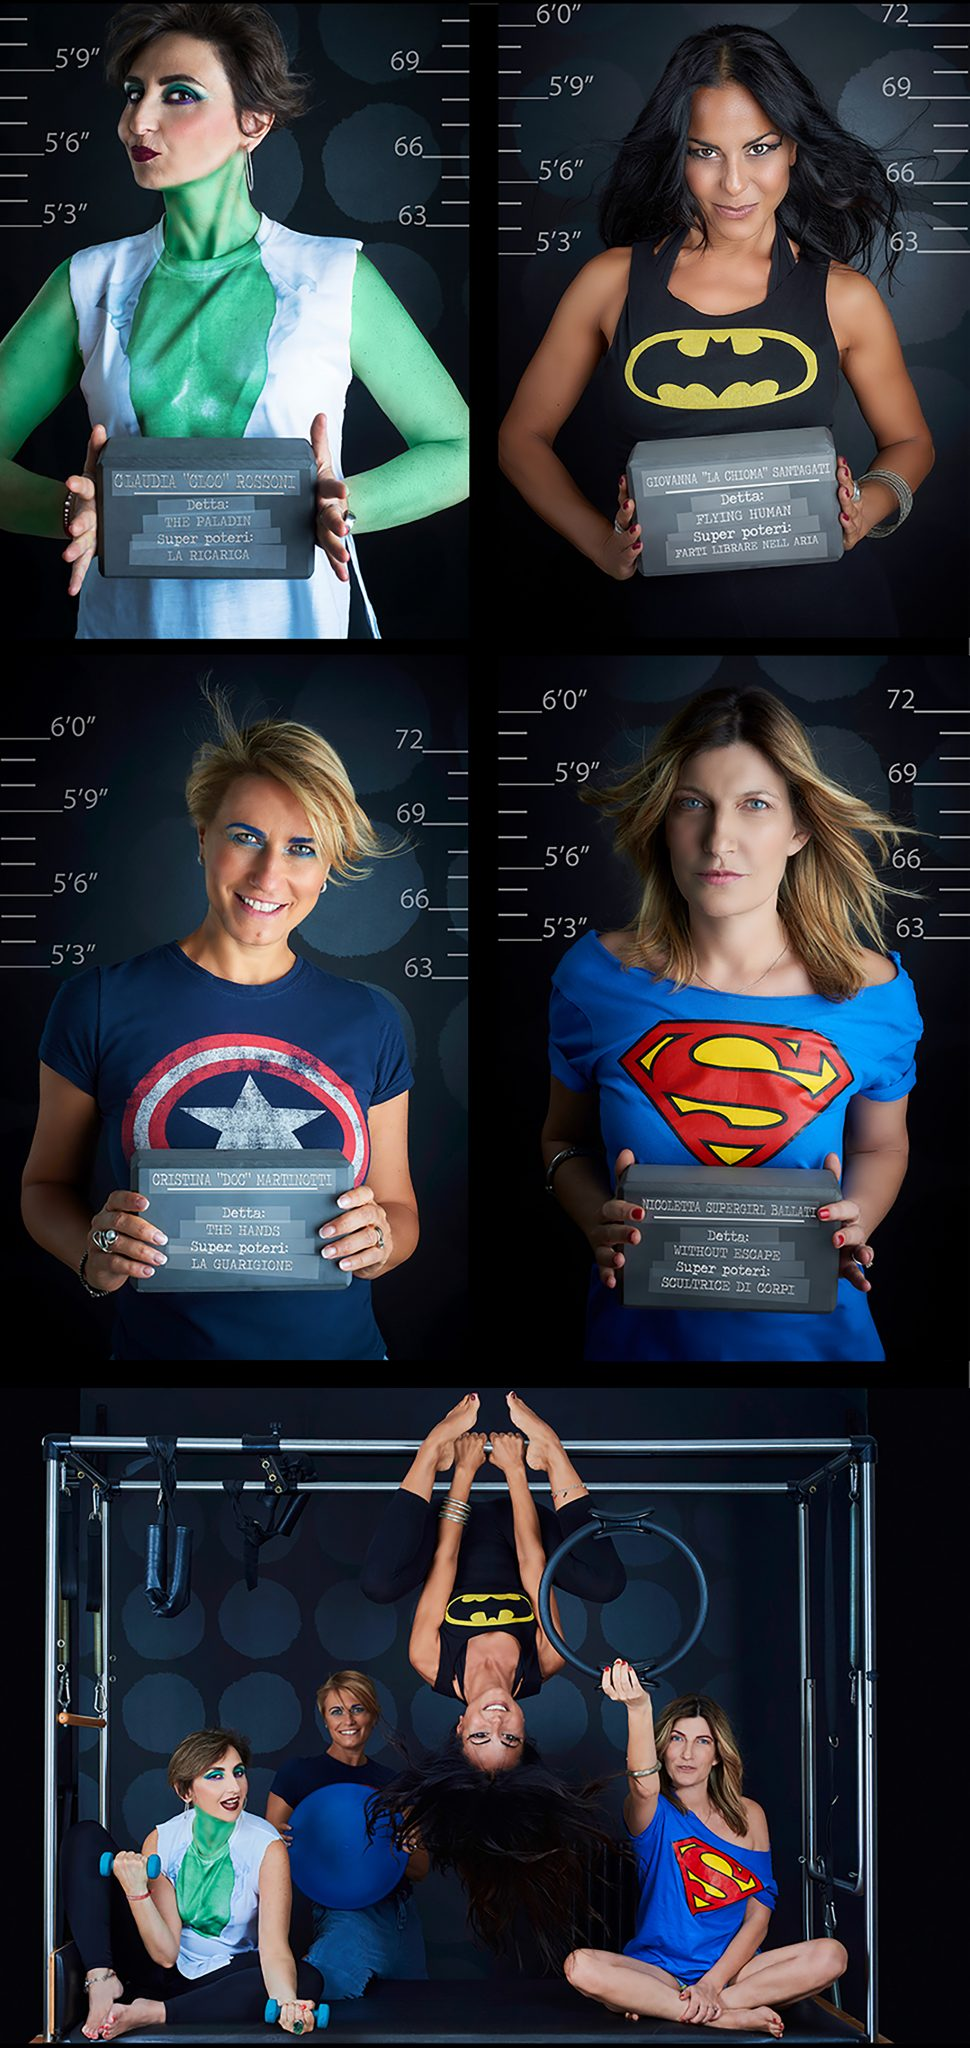 Super hero Pilates